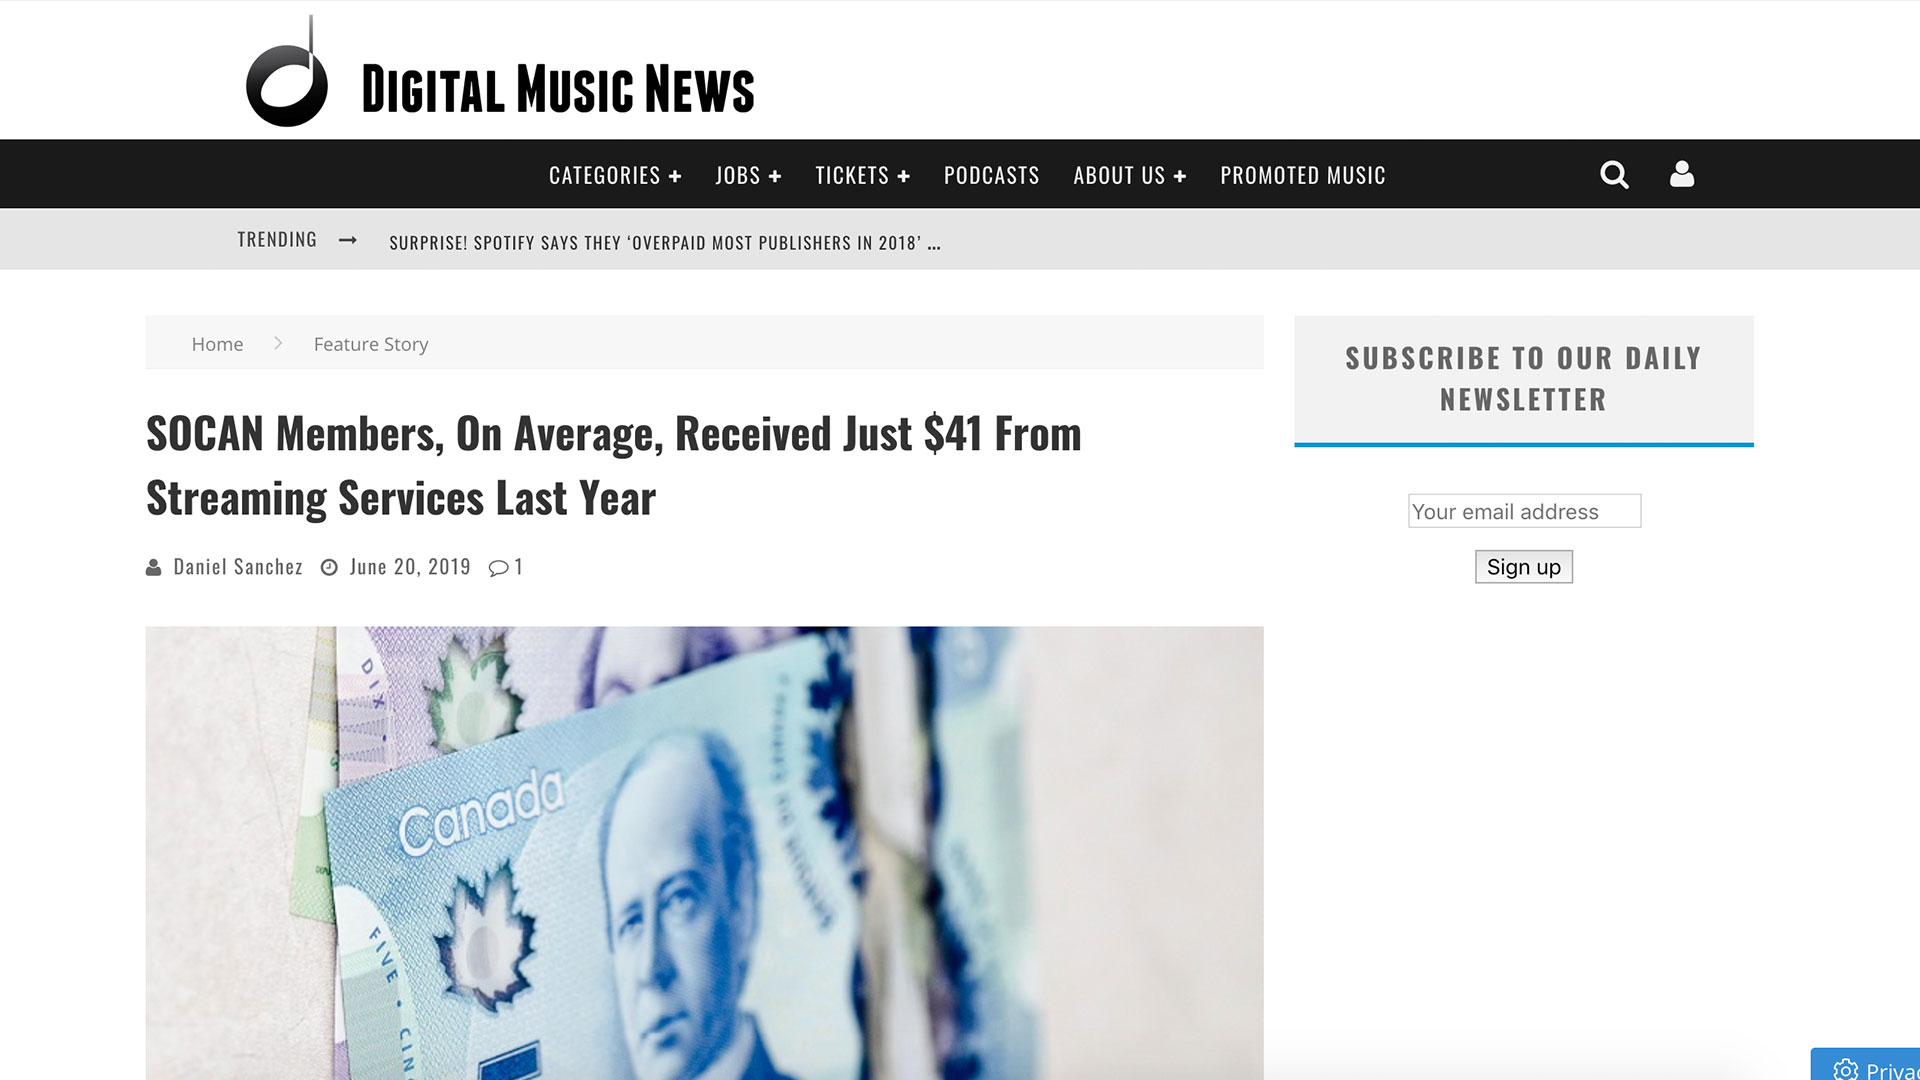 Fairness Rocks News SOCAN Members, On Average, Received Just $41 From Streaming Services Last Year